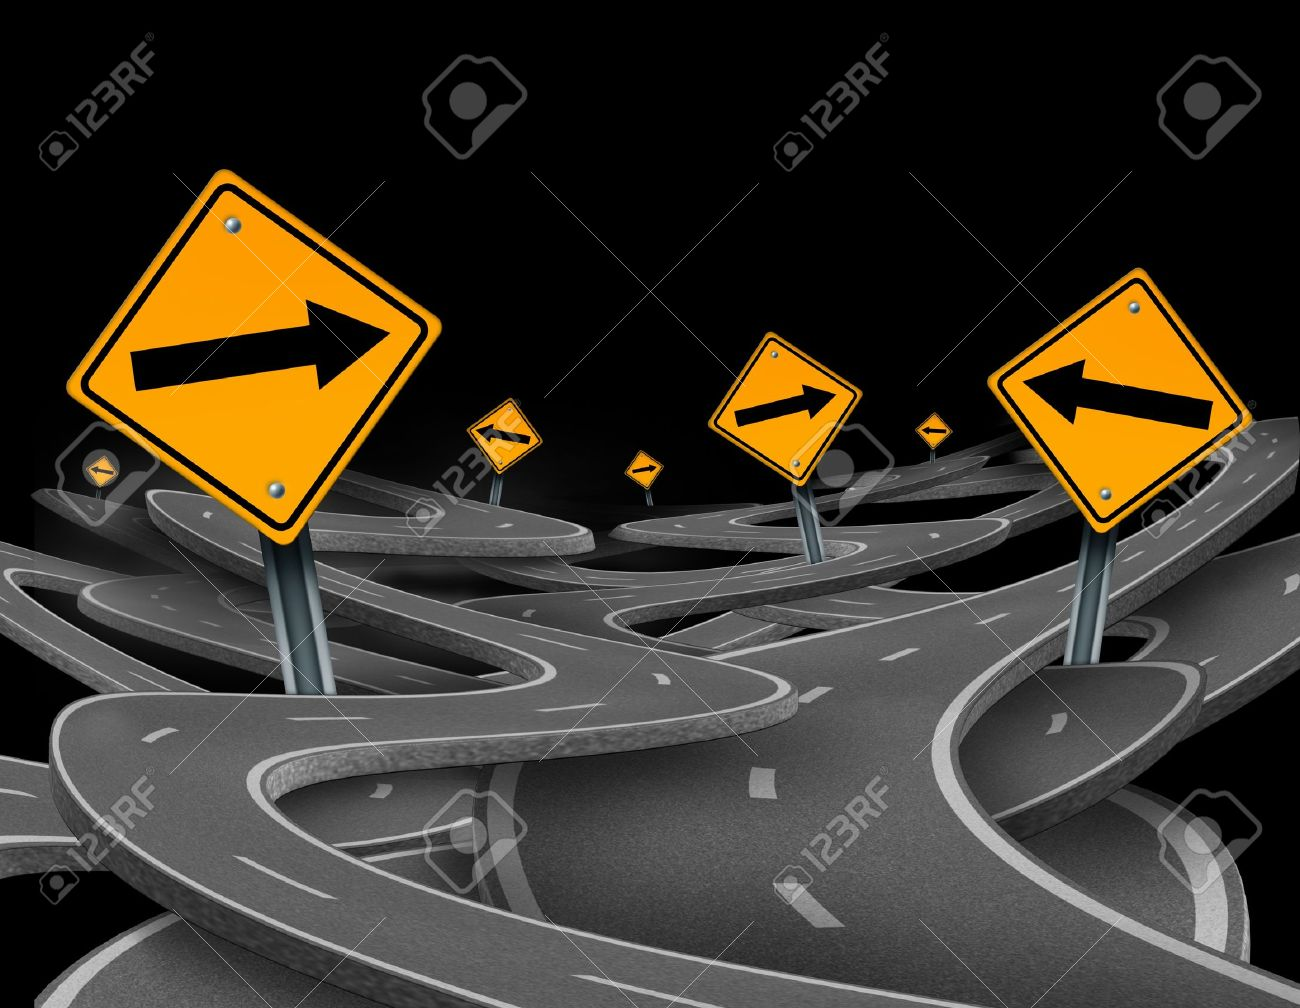 Staying on course symbol  representing dilemma and concept of losing control and strategic journey choosing the right strategic path for business with traffic signs tangled roads and highways in a confused direction. Stock Photo - 11359706